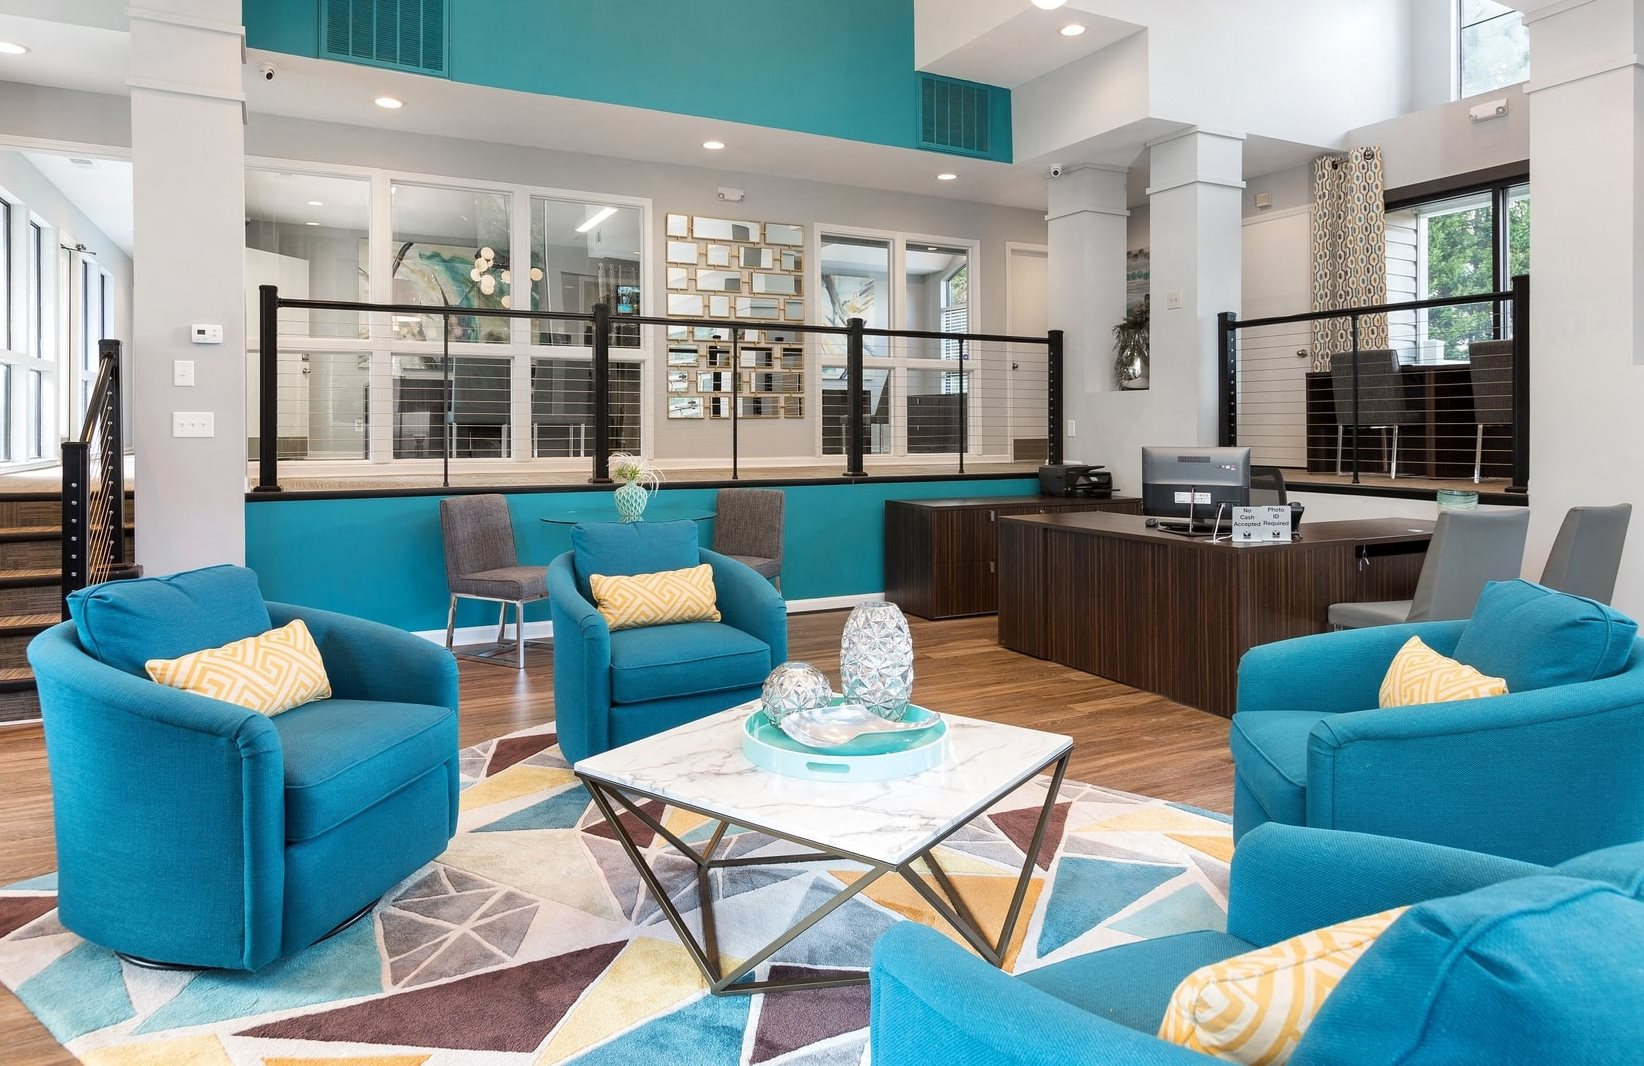 Clubhouse Seating Area with Blue Color Scheme 4 Arm Chairs Surrounding Contemporary Coffee Table